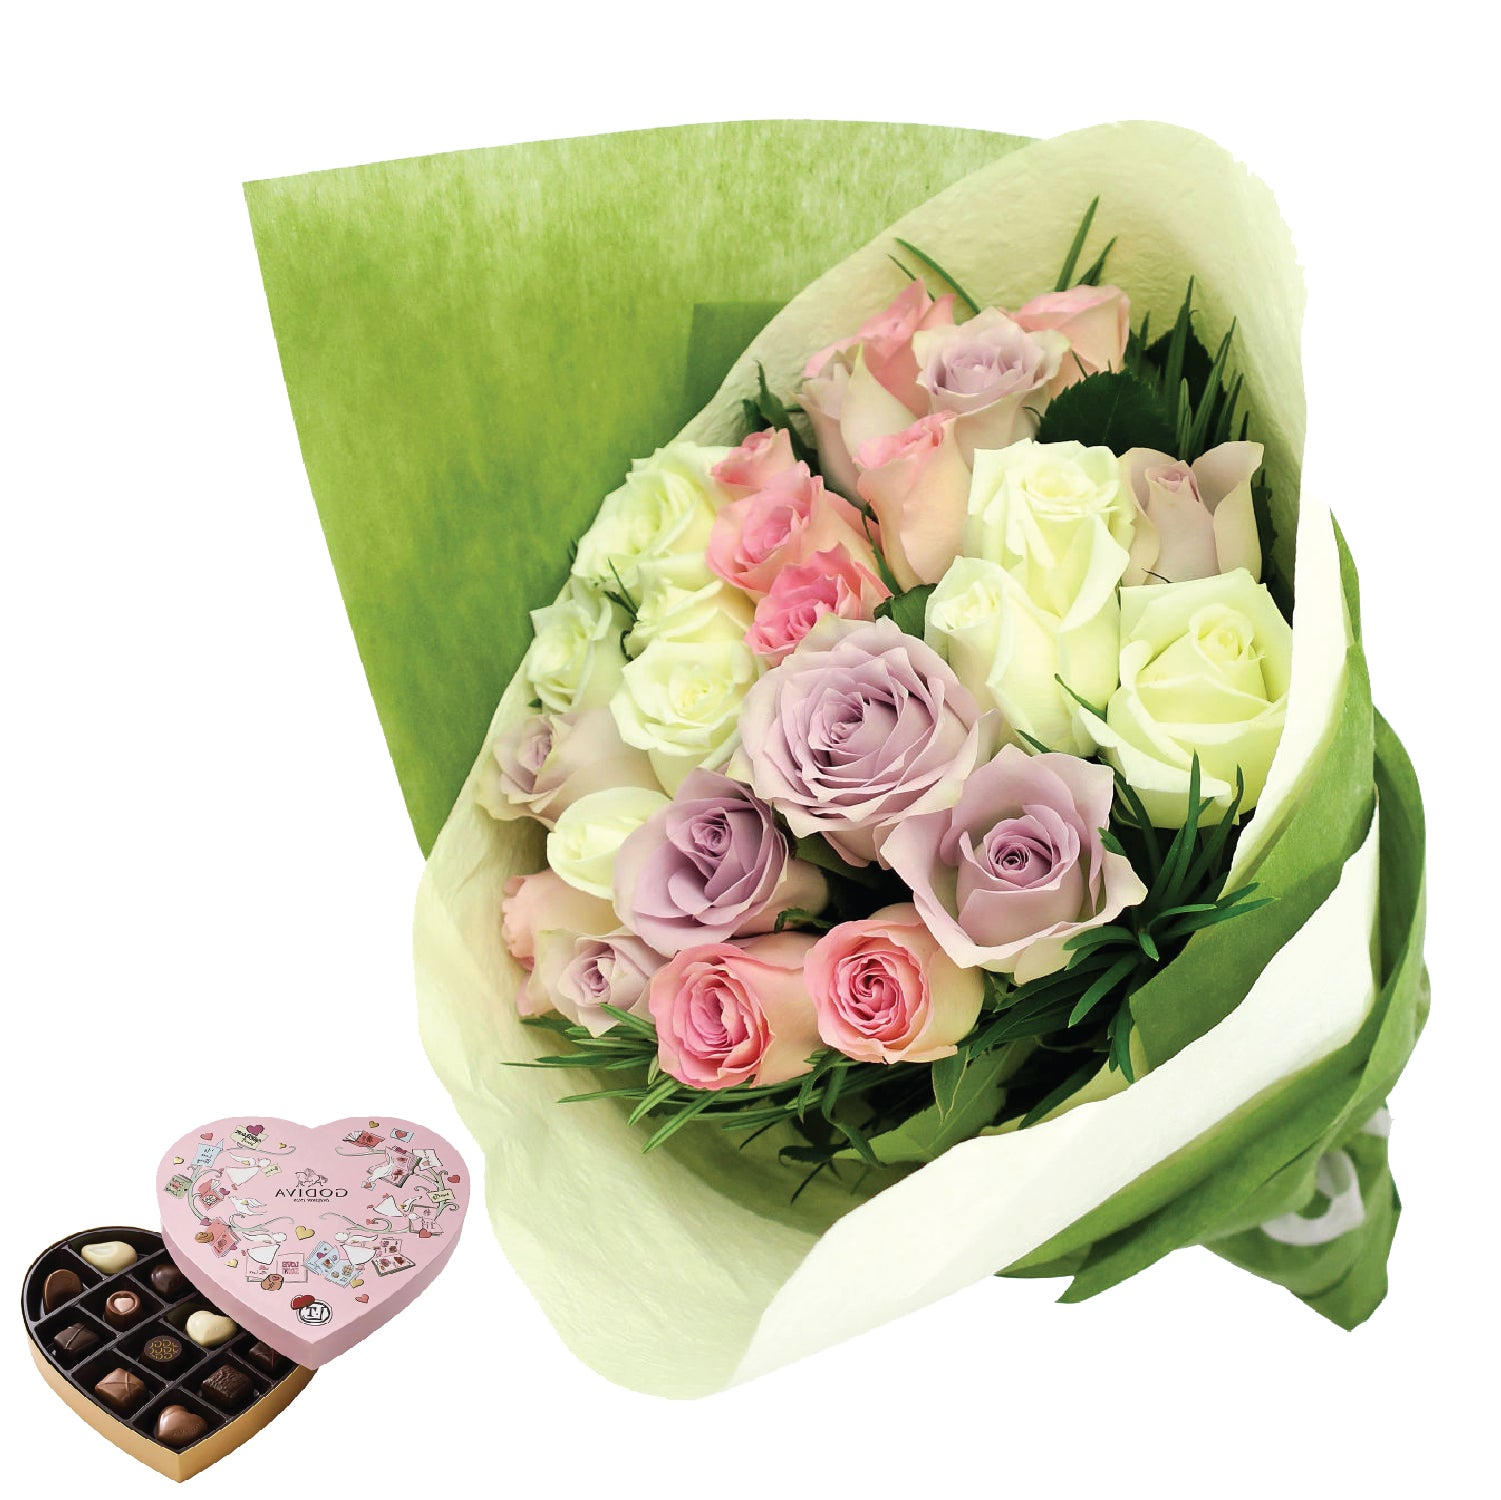 Pastel Roses - Godiva Heart Chocolate Gift Box